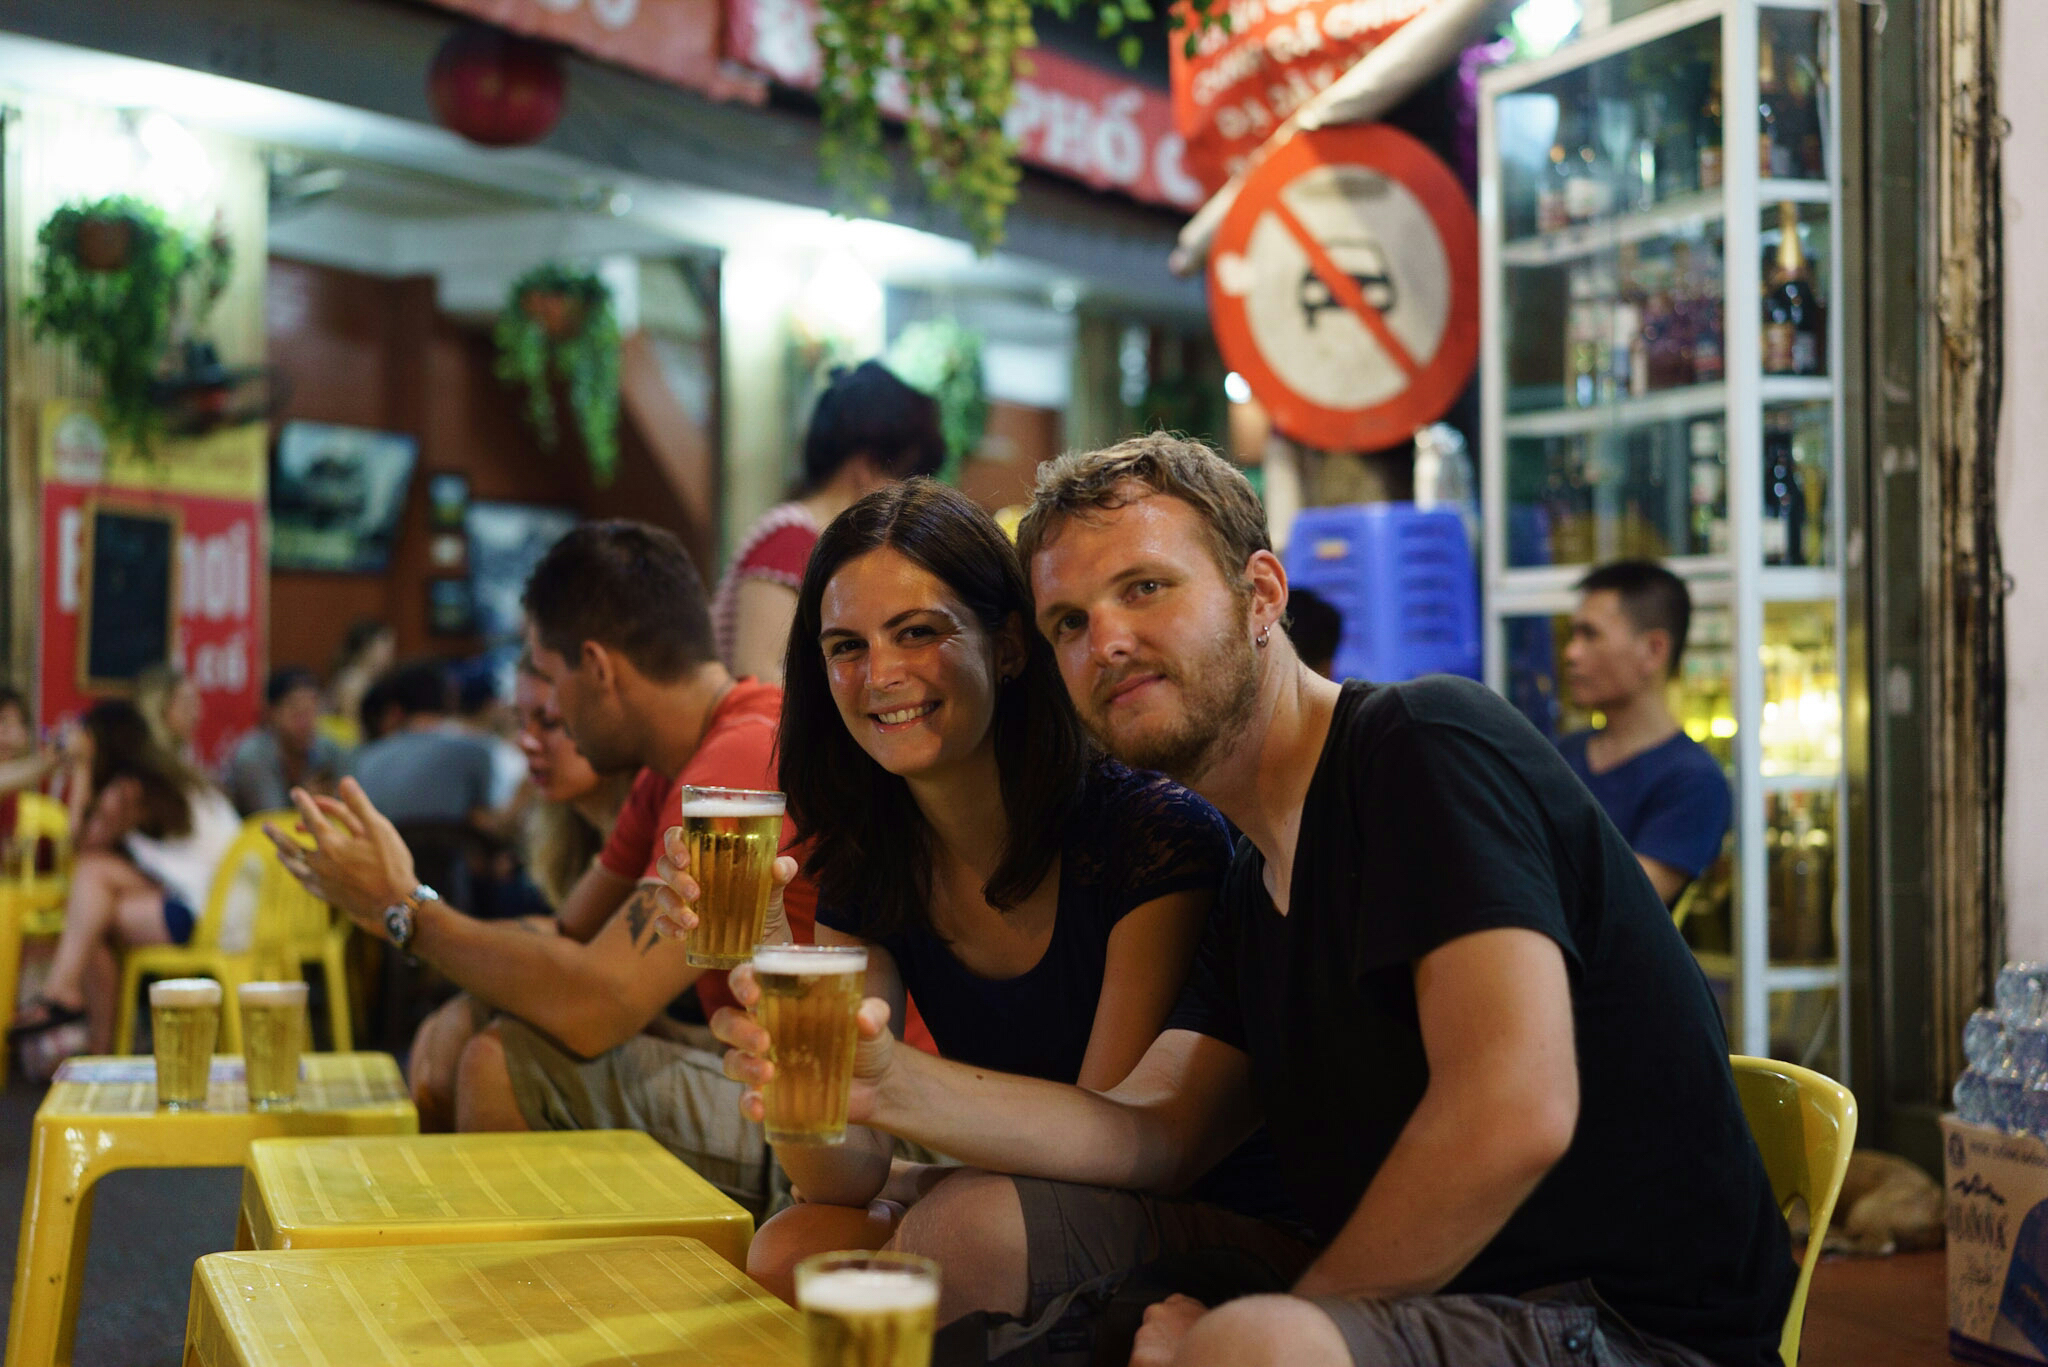 Having a beer in Hanoi